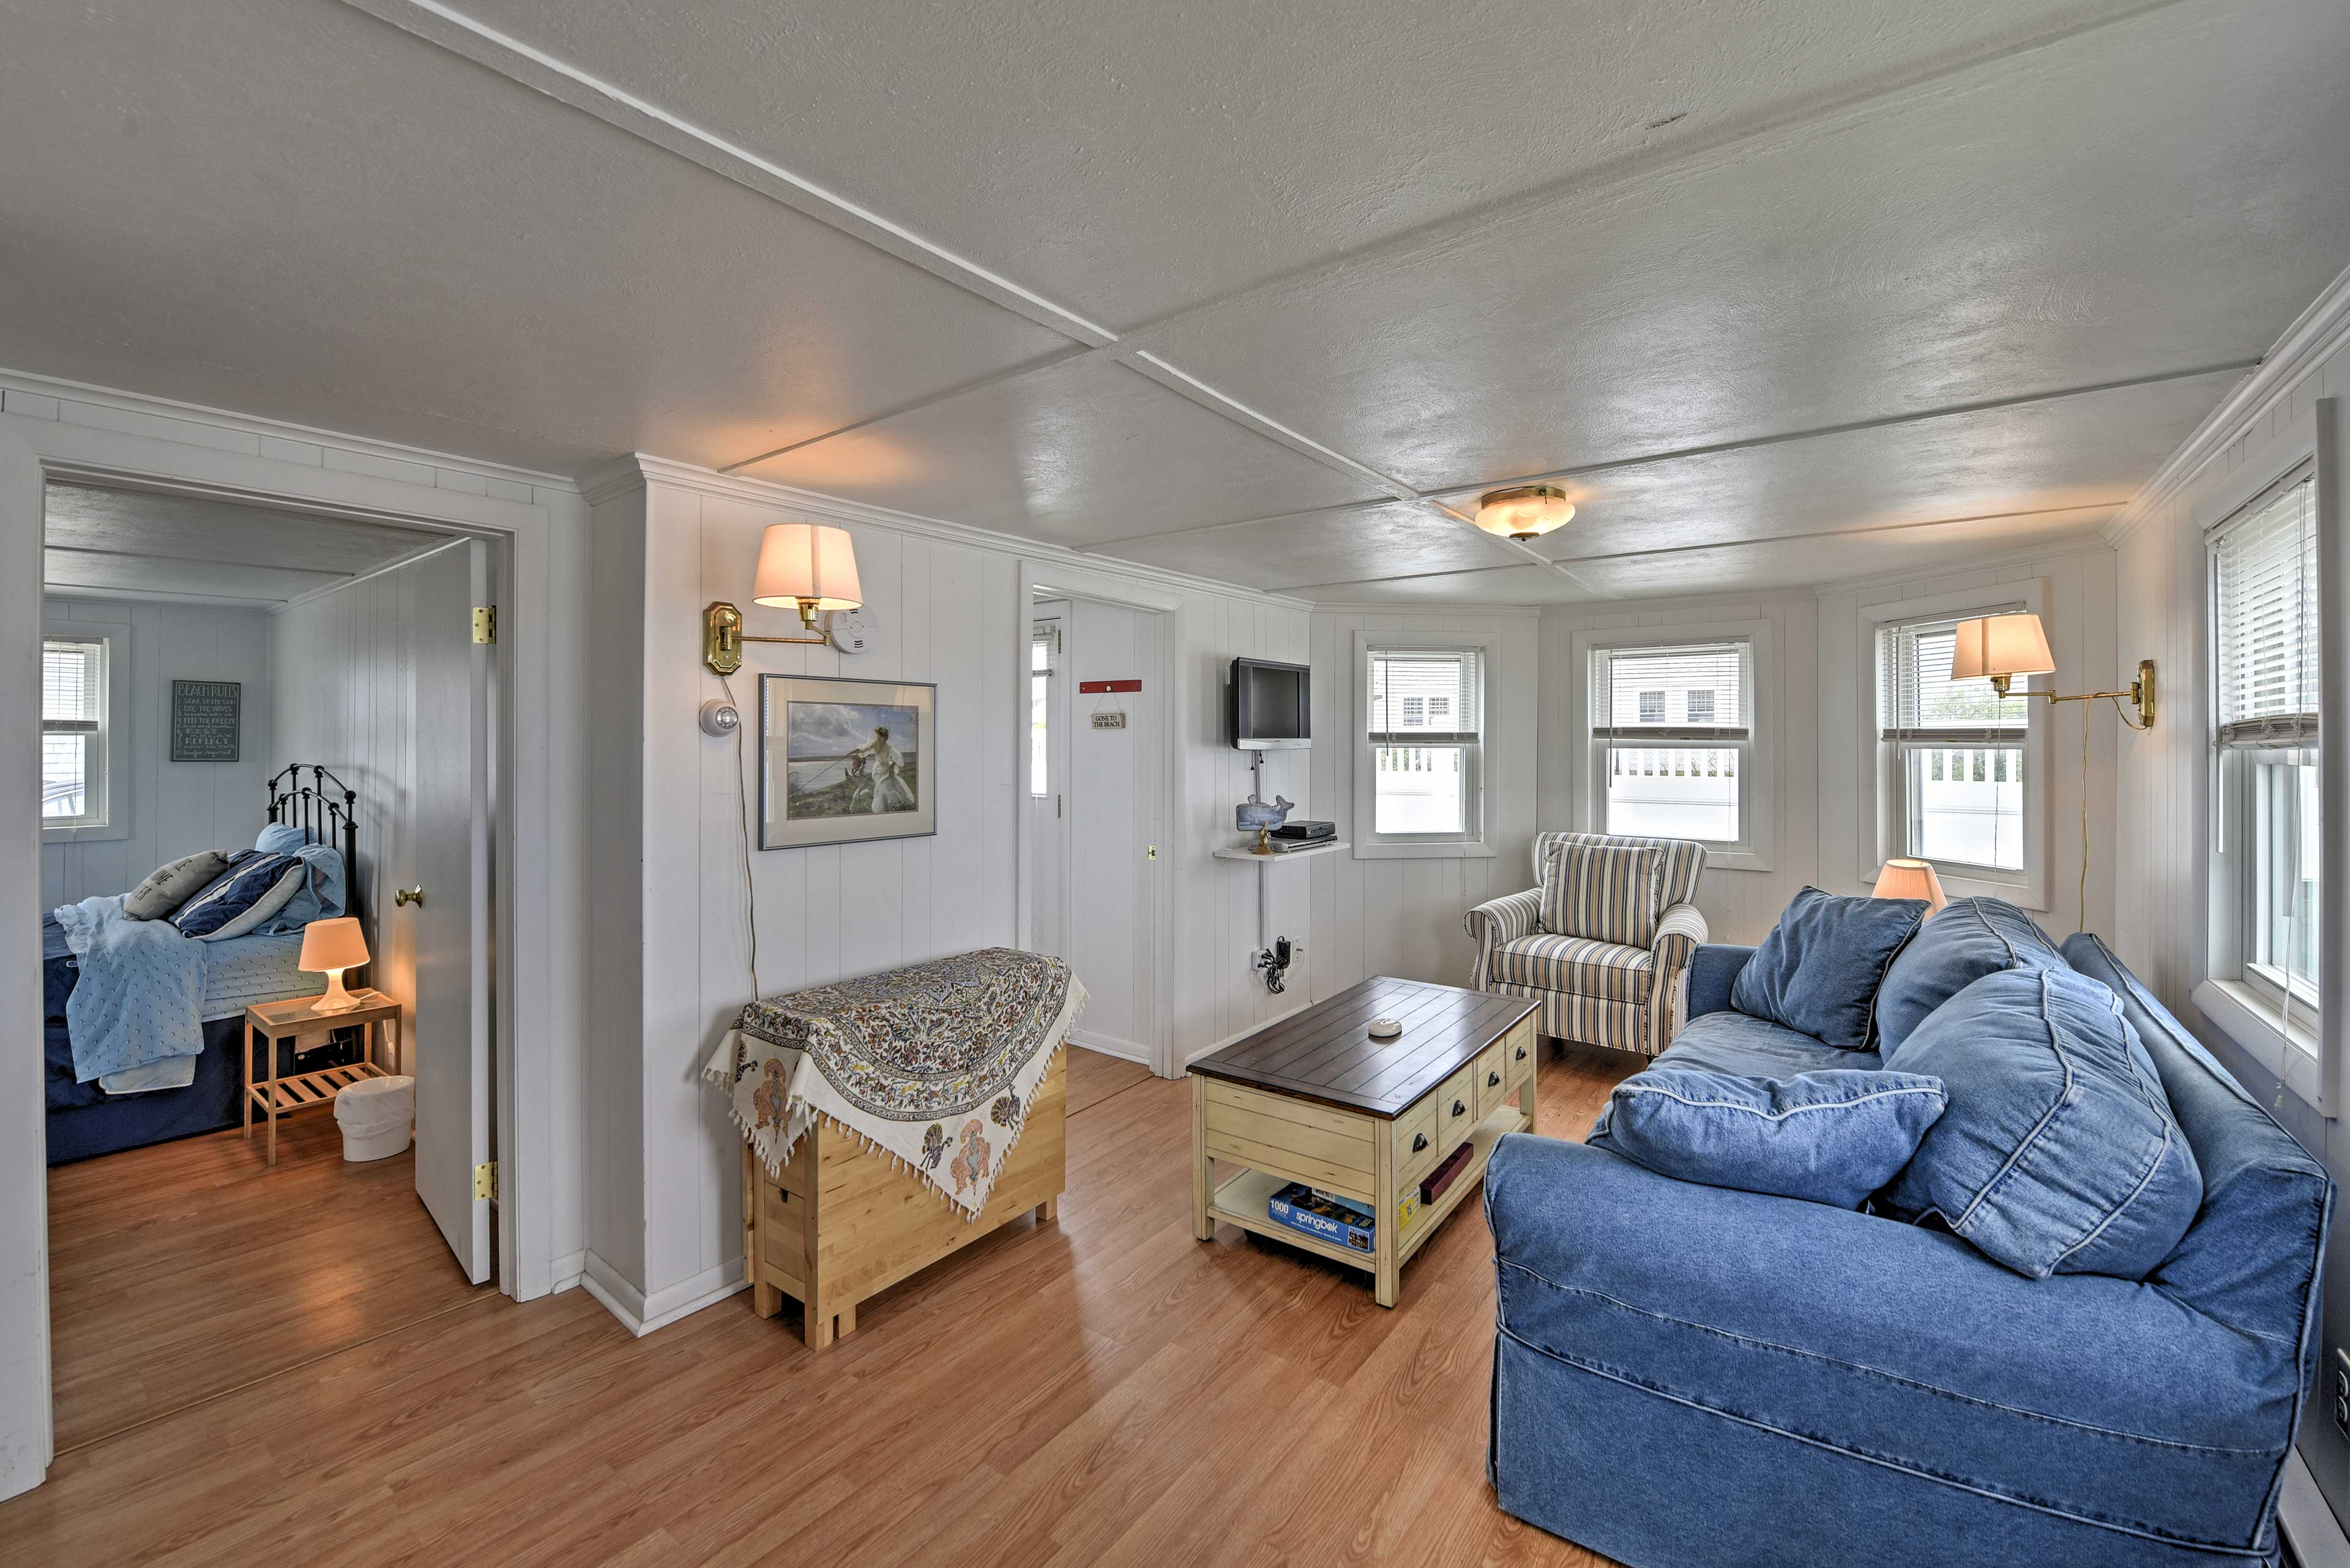 Plan a relaxing retreat to this picturesque home in South Kingston, RI!